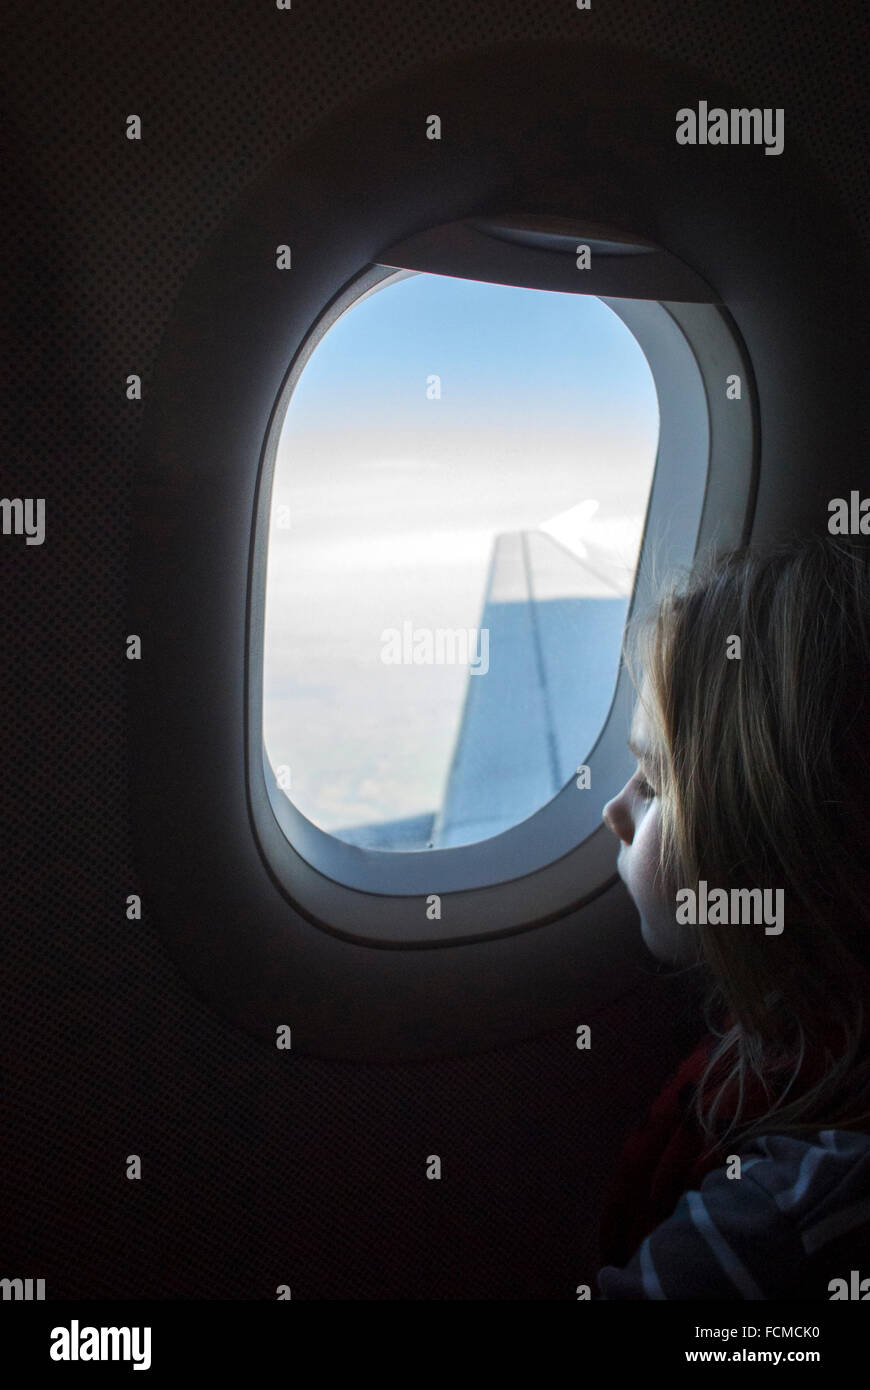 Young girl looking out of airplane window while plane is flying. - Stock Image